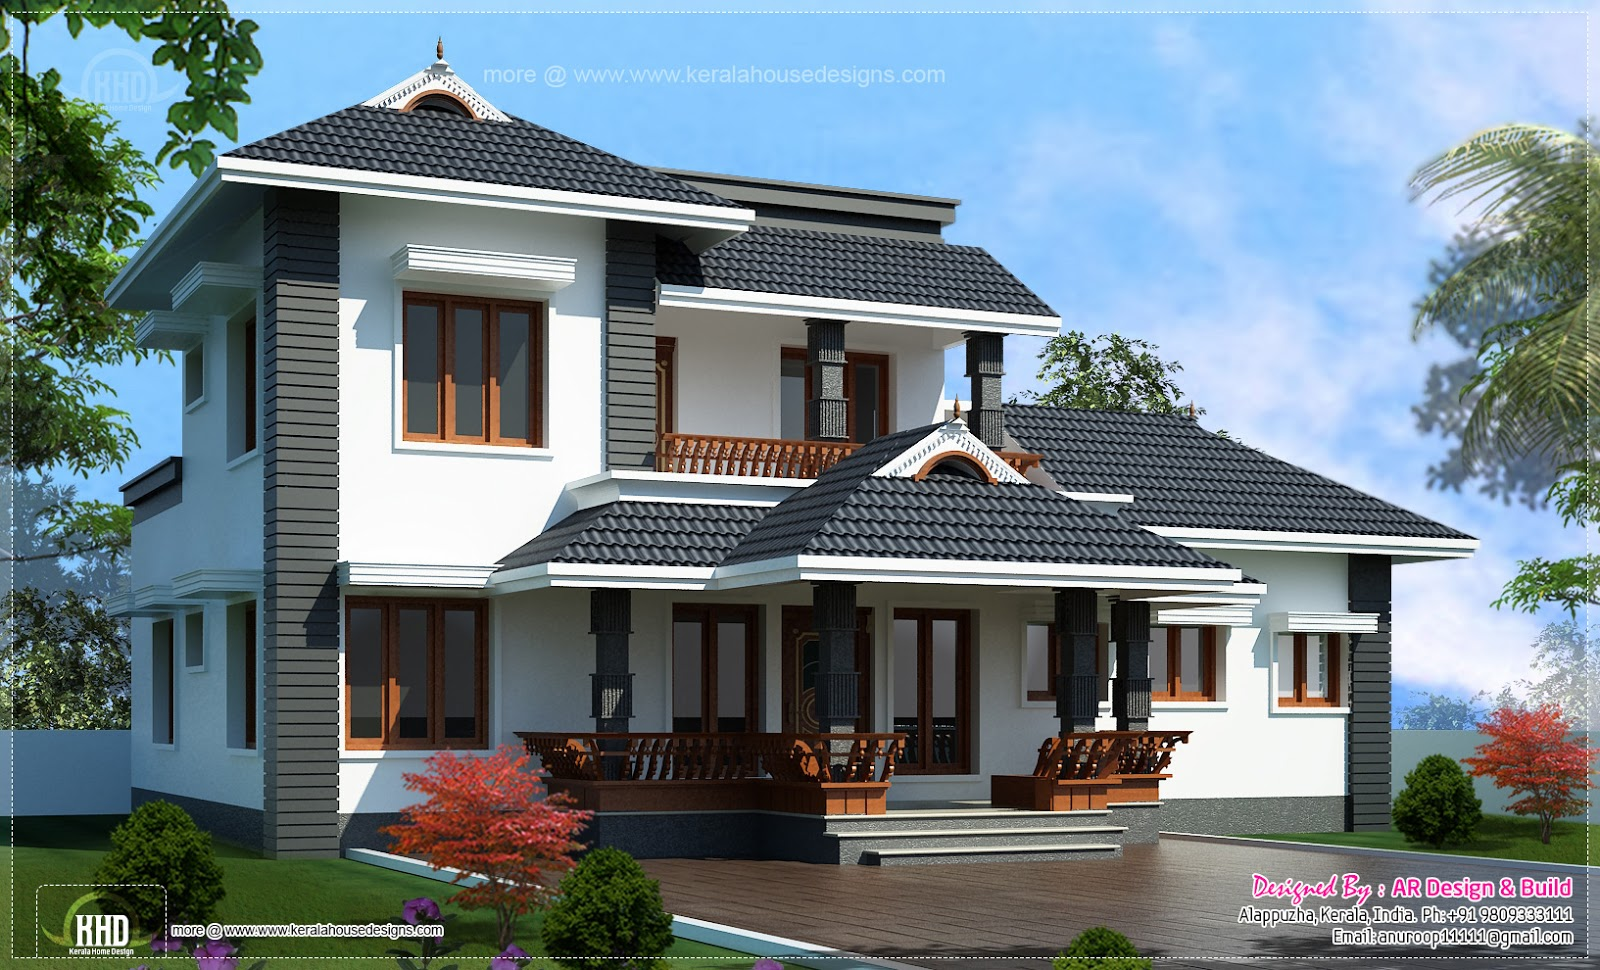 2000 4 bedroom sloping roof residence kerala